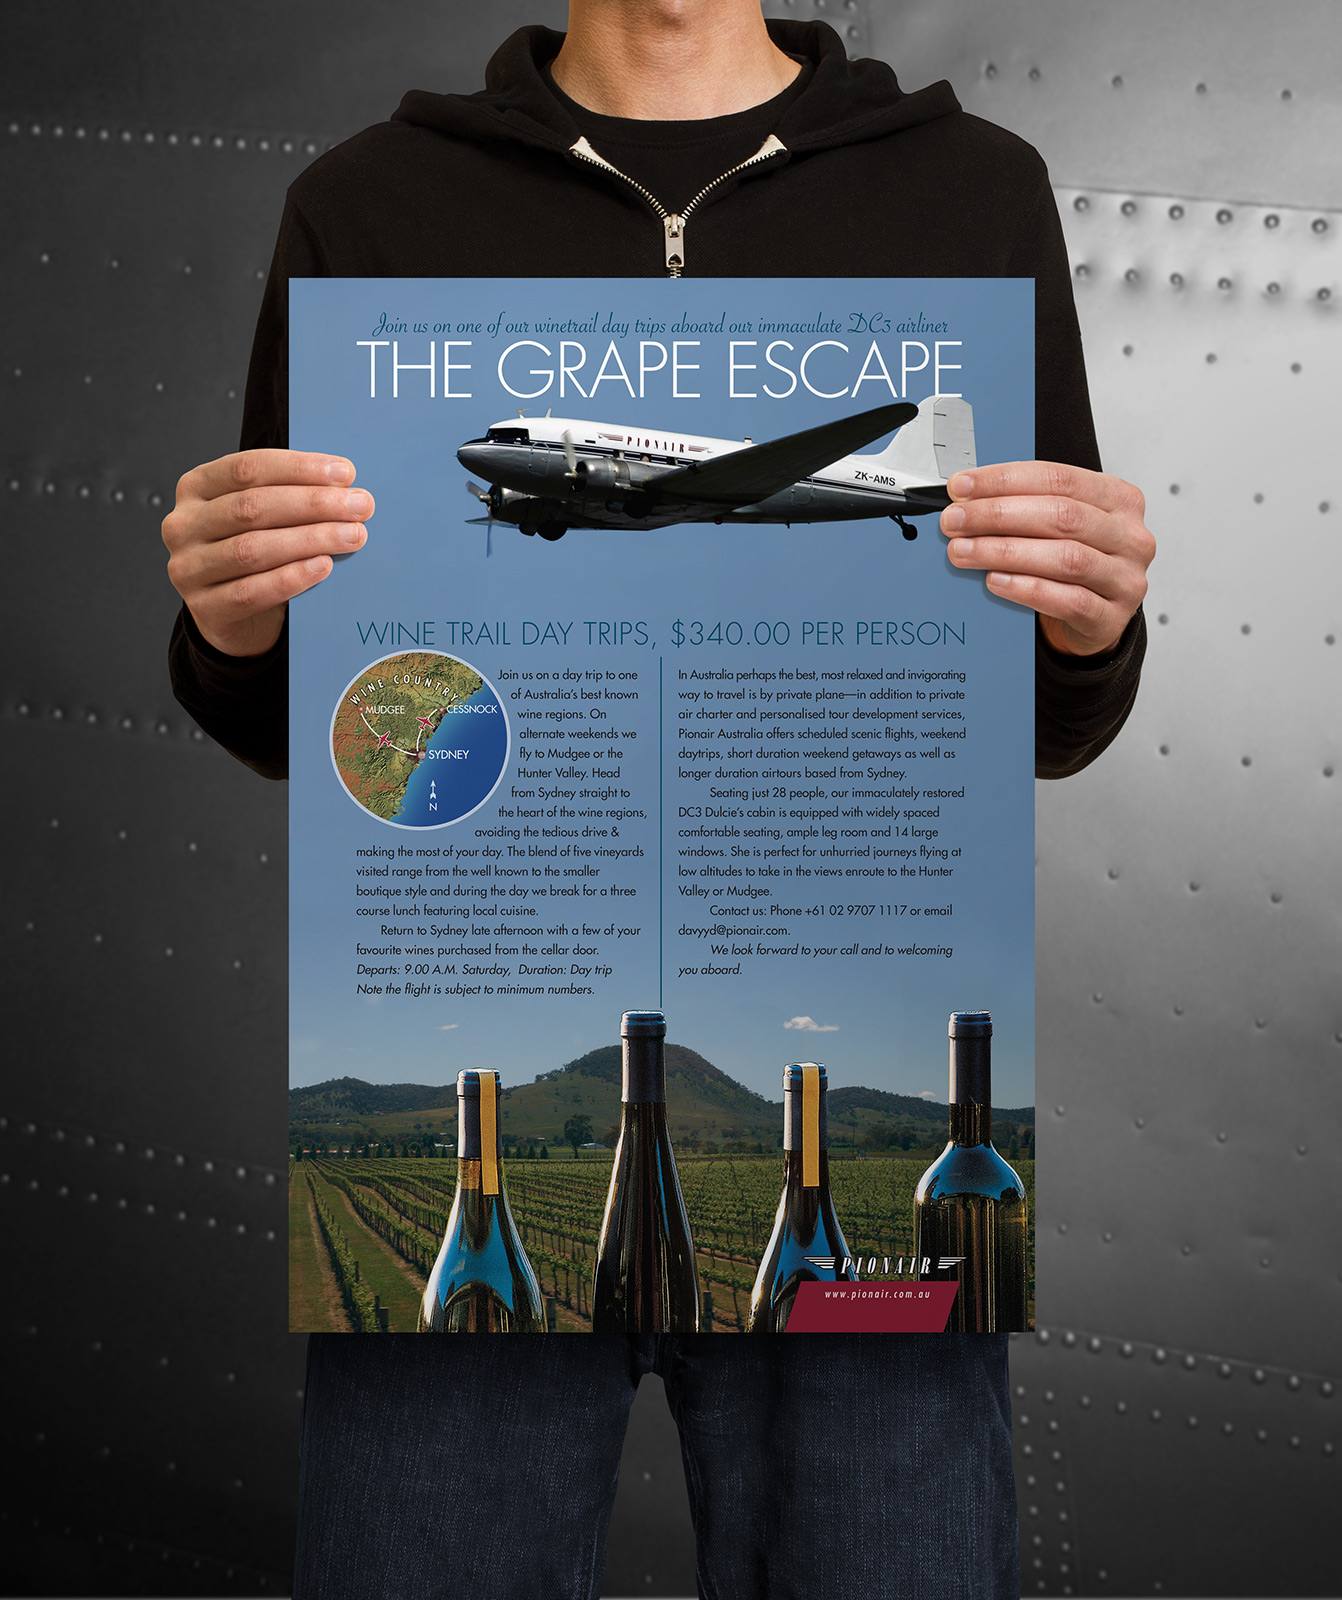 Pionair Sydney, 'The Grape Escape' Classic DC3 weekend Wine trail day trips. 'Join us on one of our winetrail day trips aboard our immaculate DC3 airliner'. Full page colour ad, and display poster, 'Golden Era of Air Travel' campaign theme.